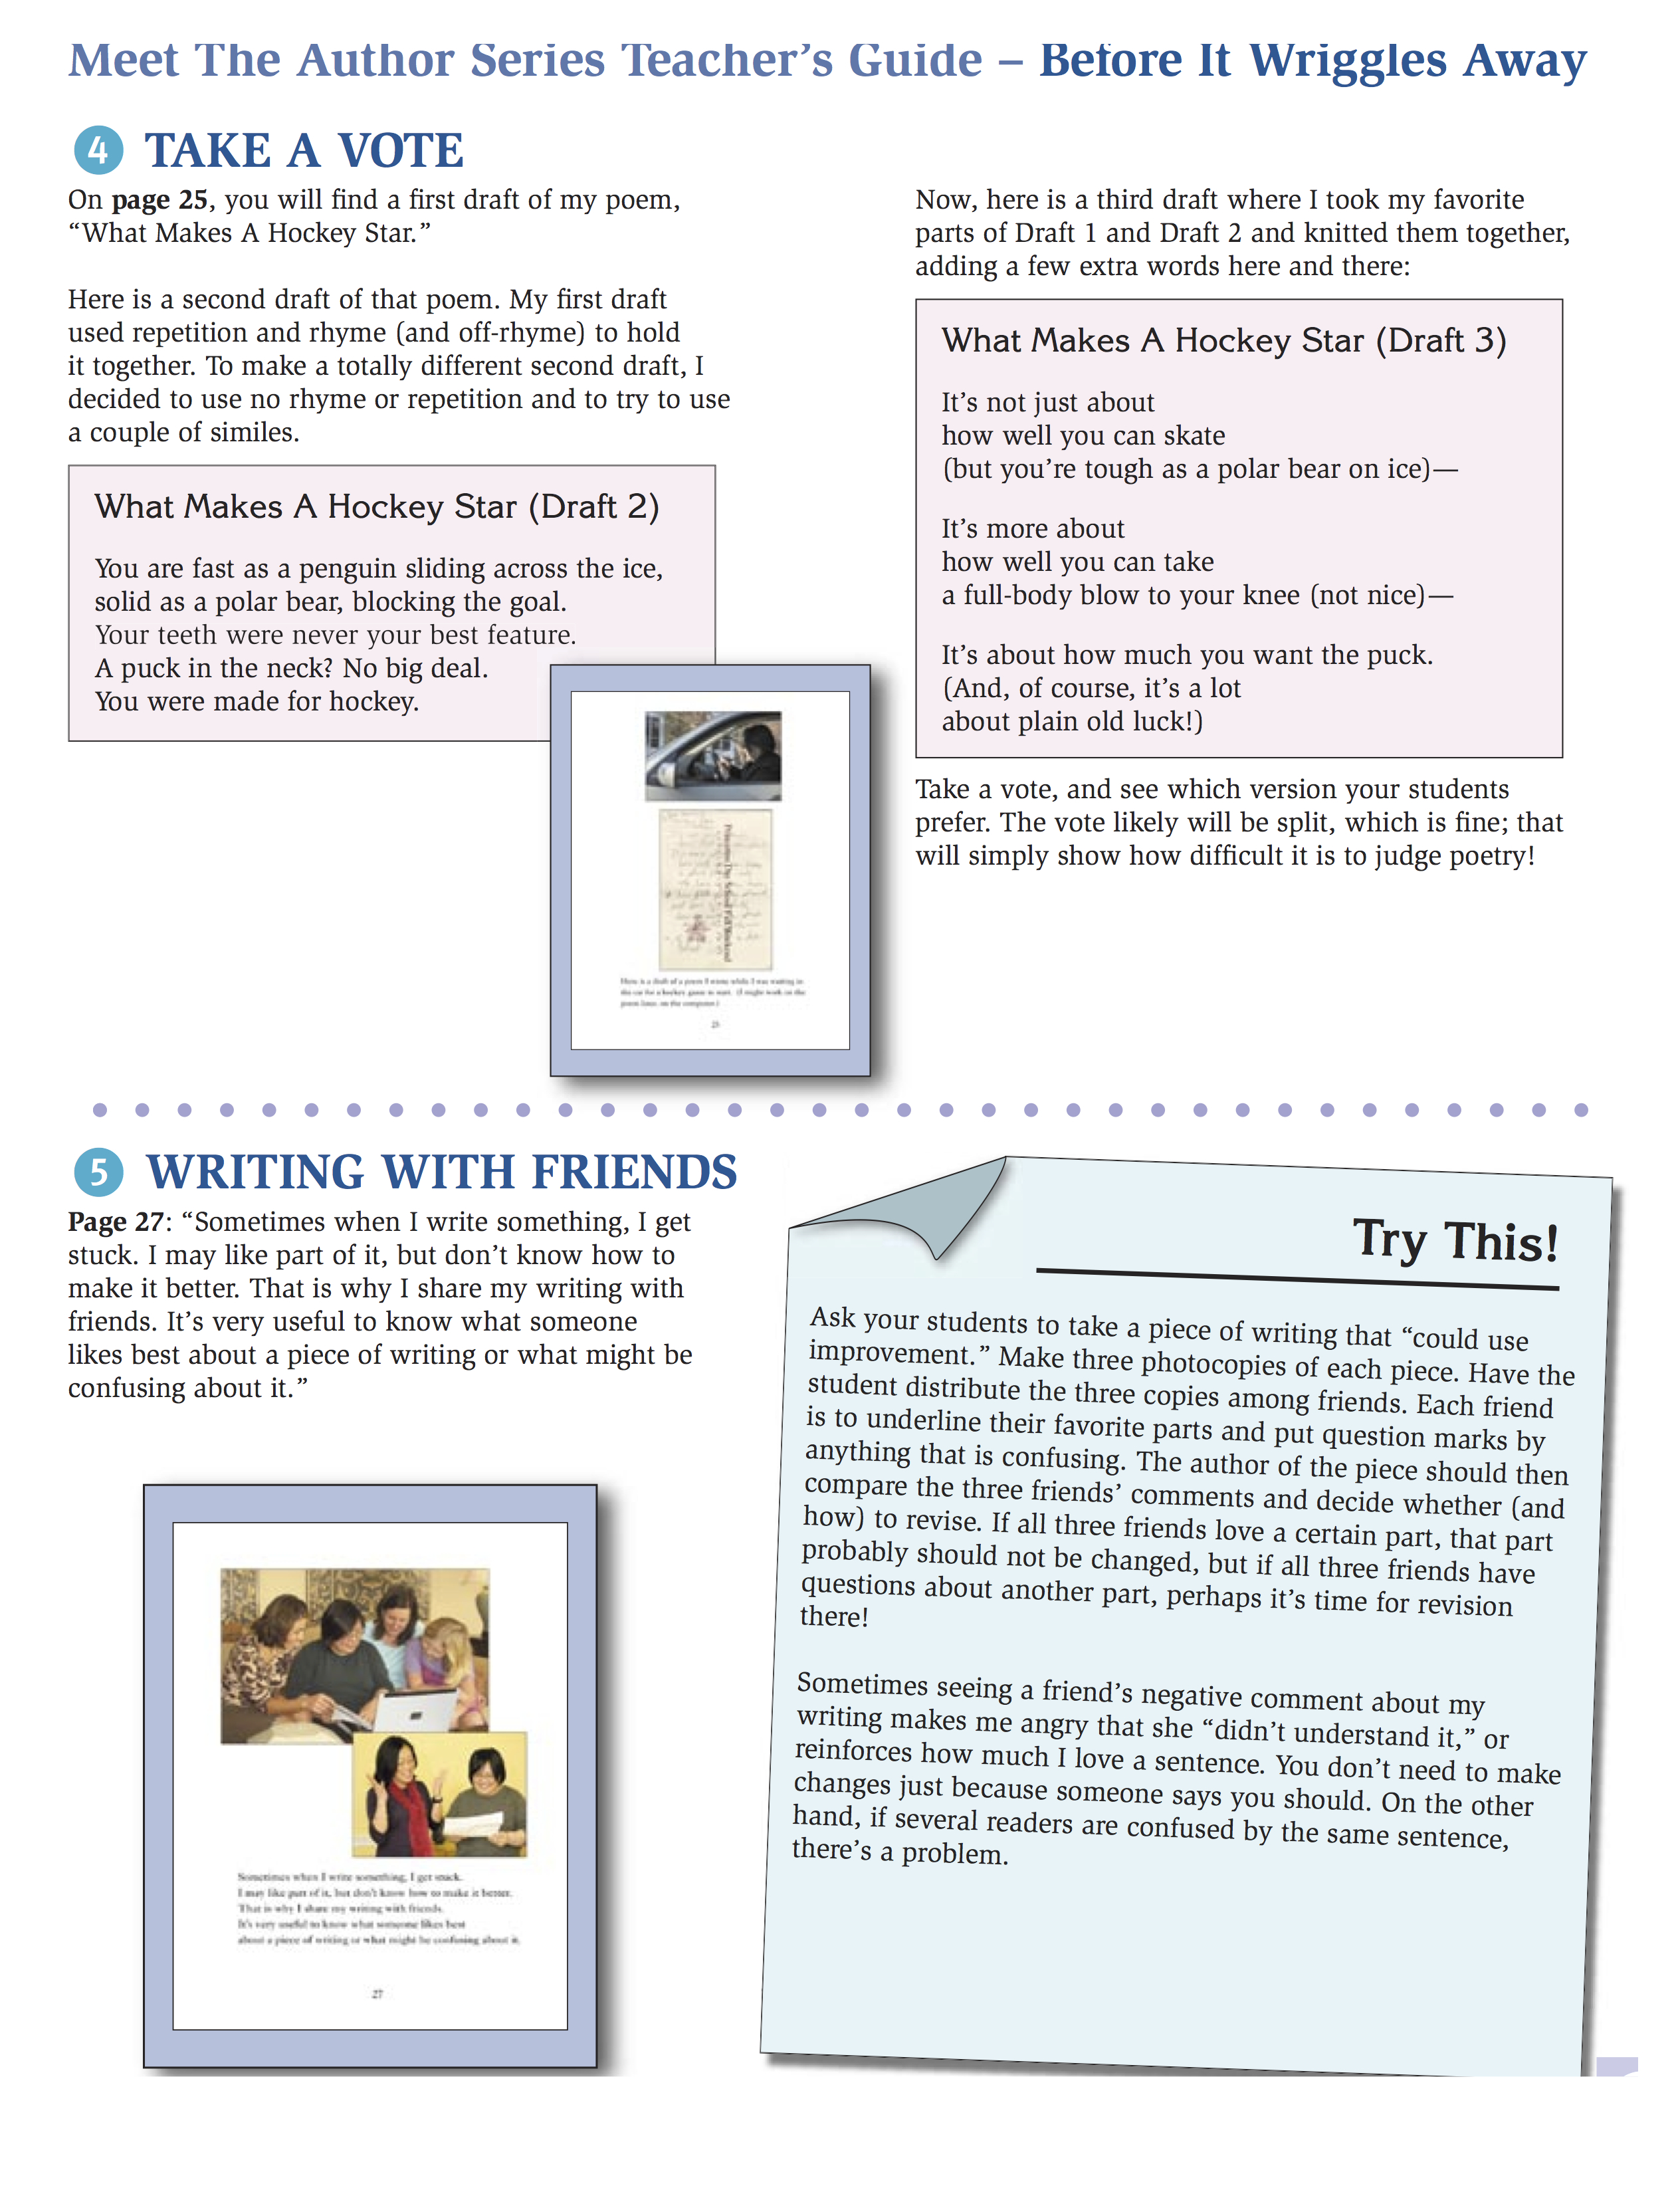 writing tips page 3